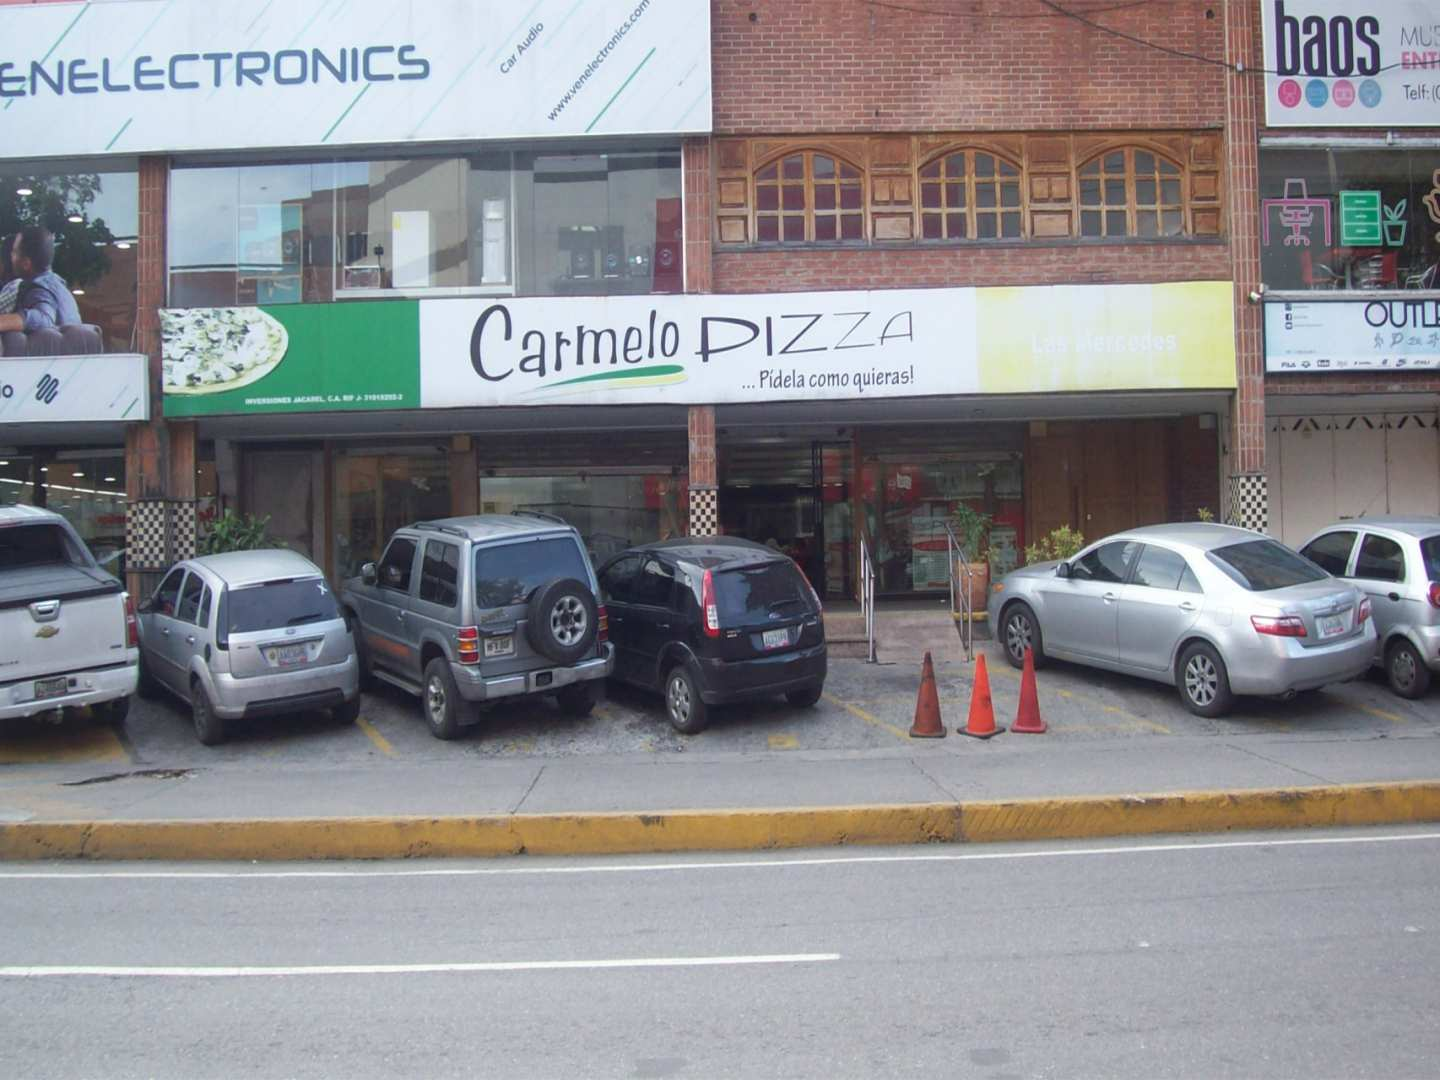 Carmelo Pizza (Las Mercedes)